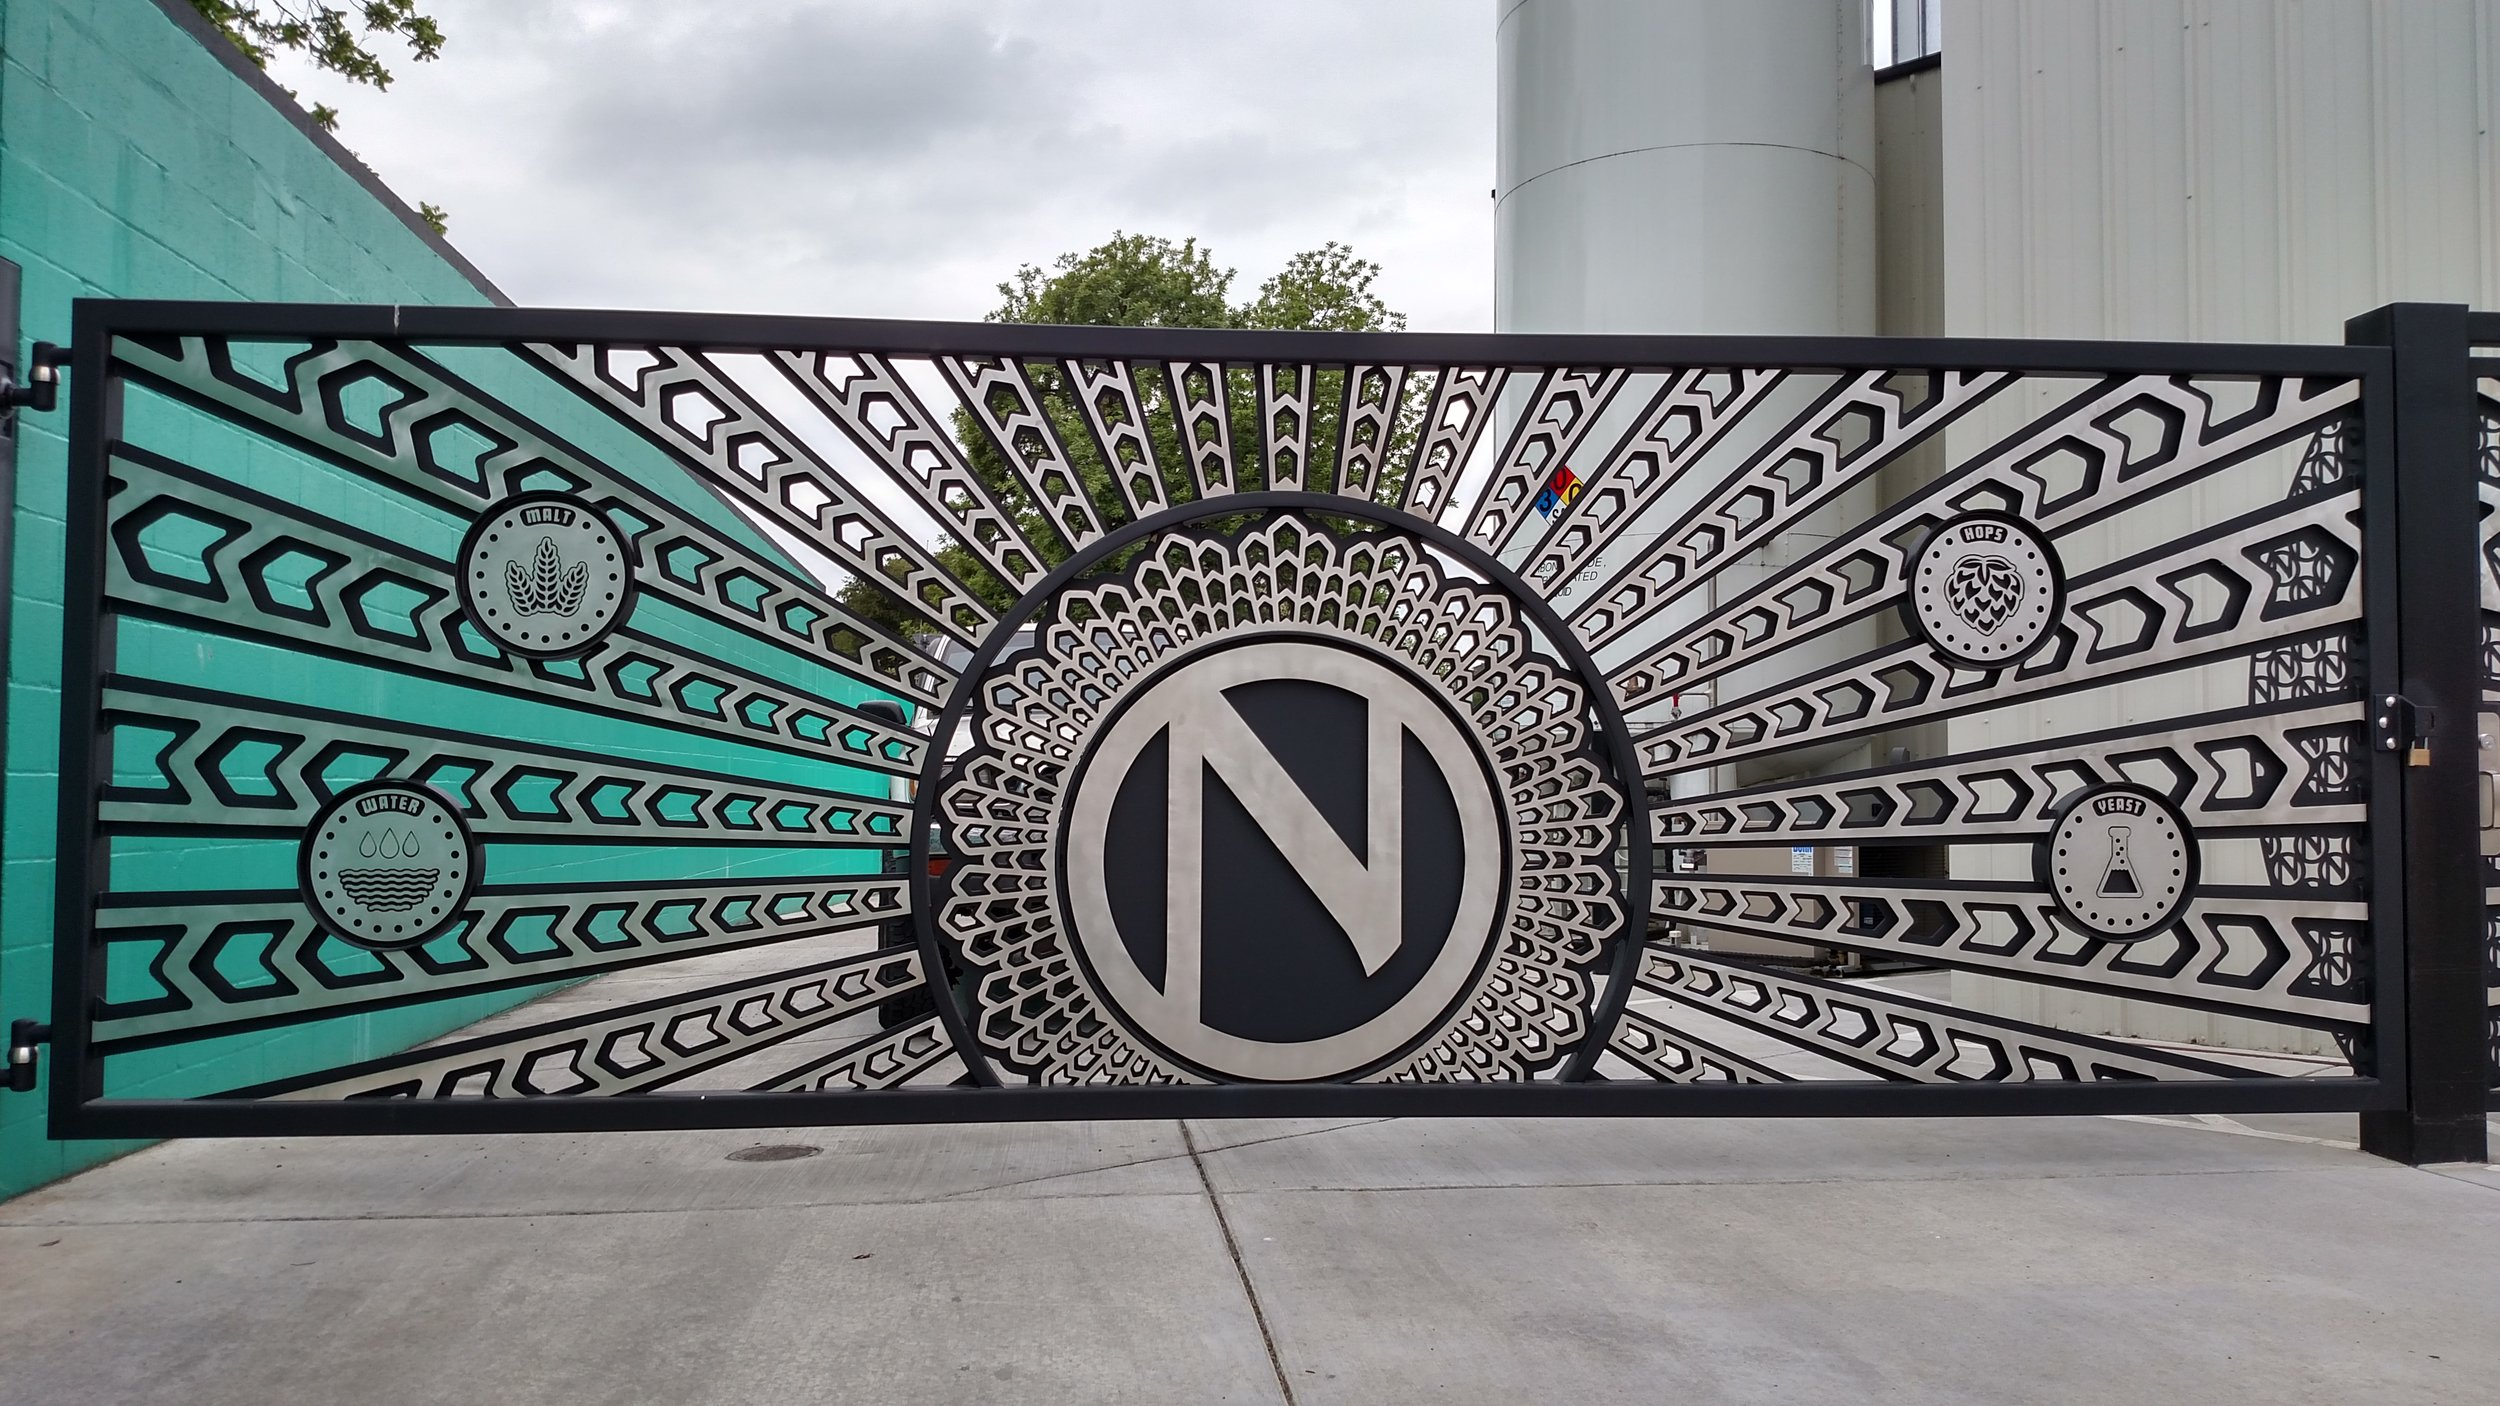 Ninkasi Brewing Stainless Steel Powder Coated Triptych Gate